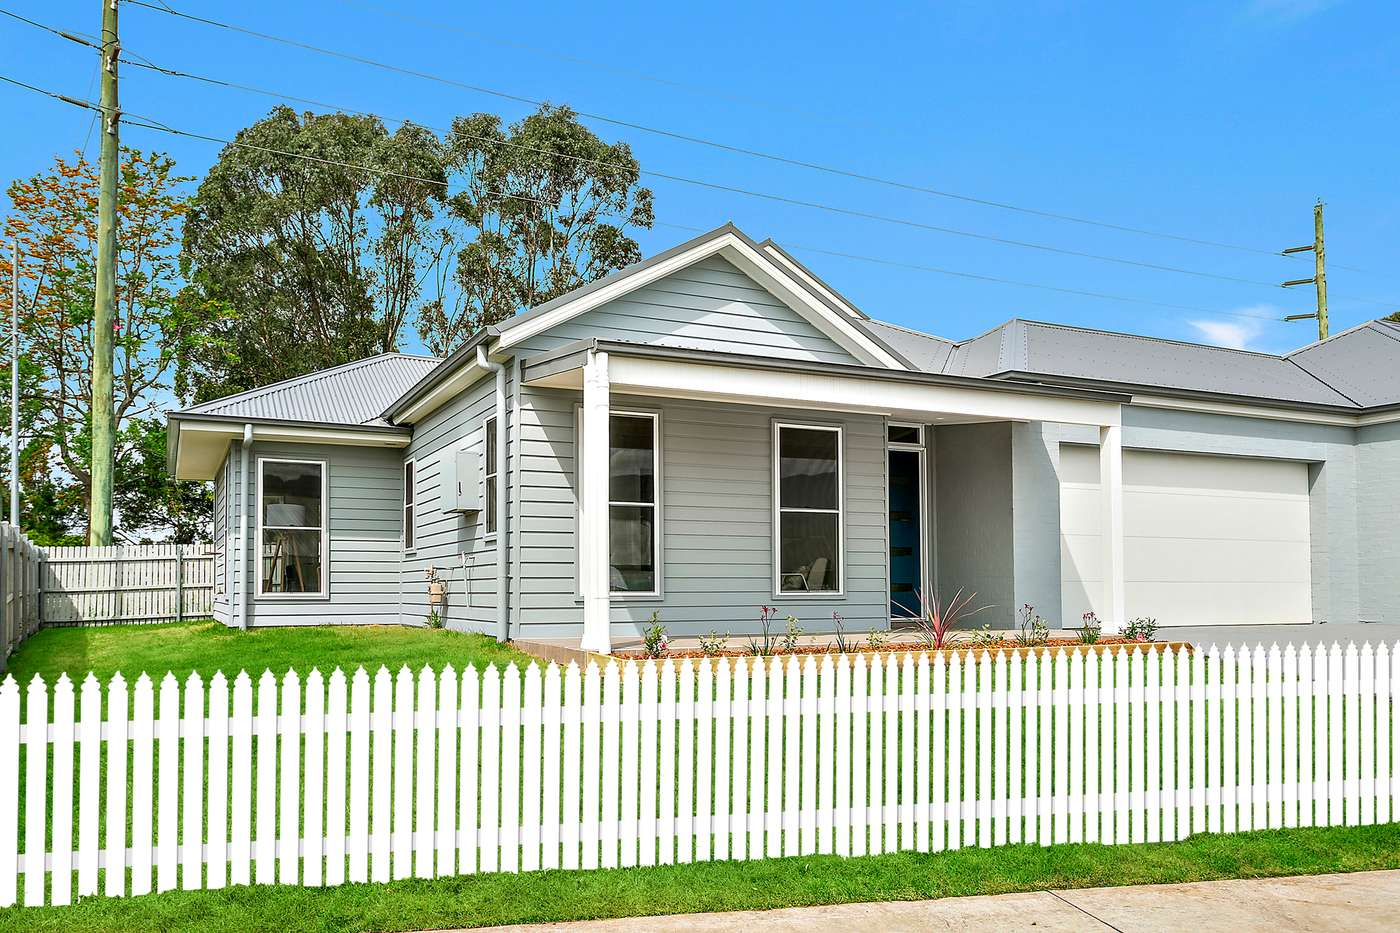 Main view of Homely house listing, 1 Nimmitabel Street, Tullimbar, NSW 2527